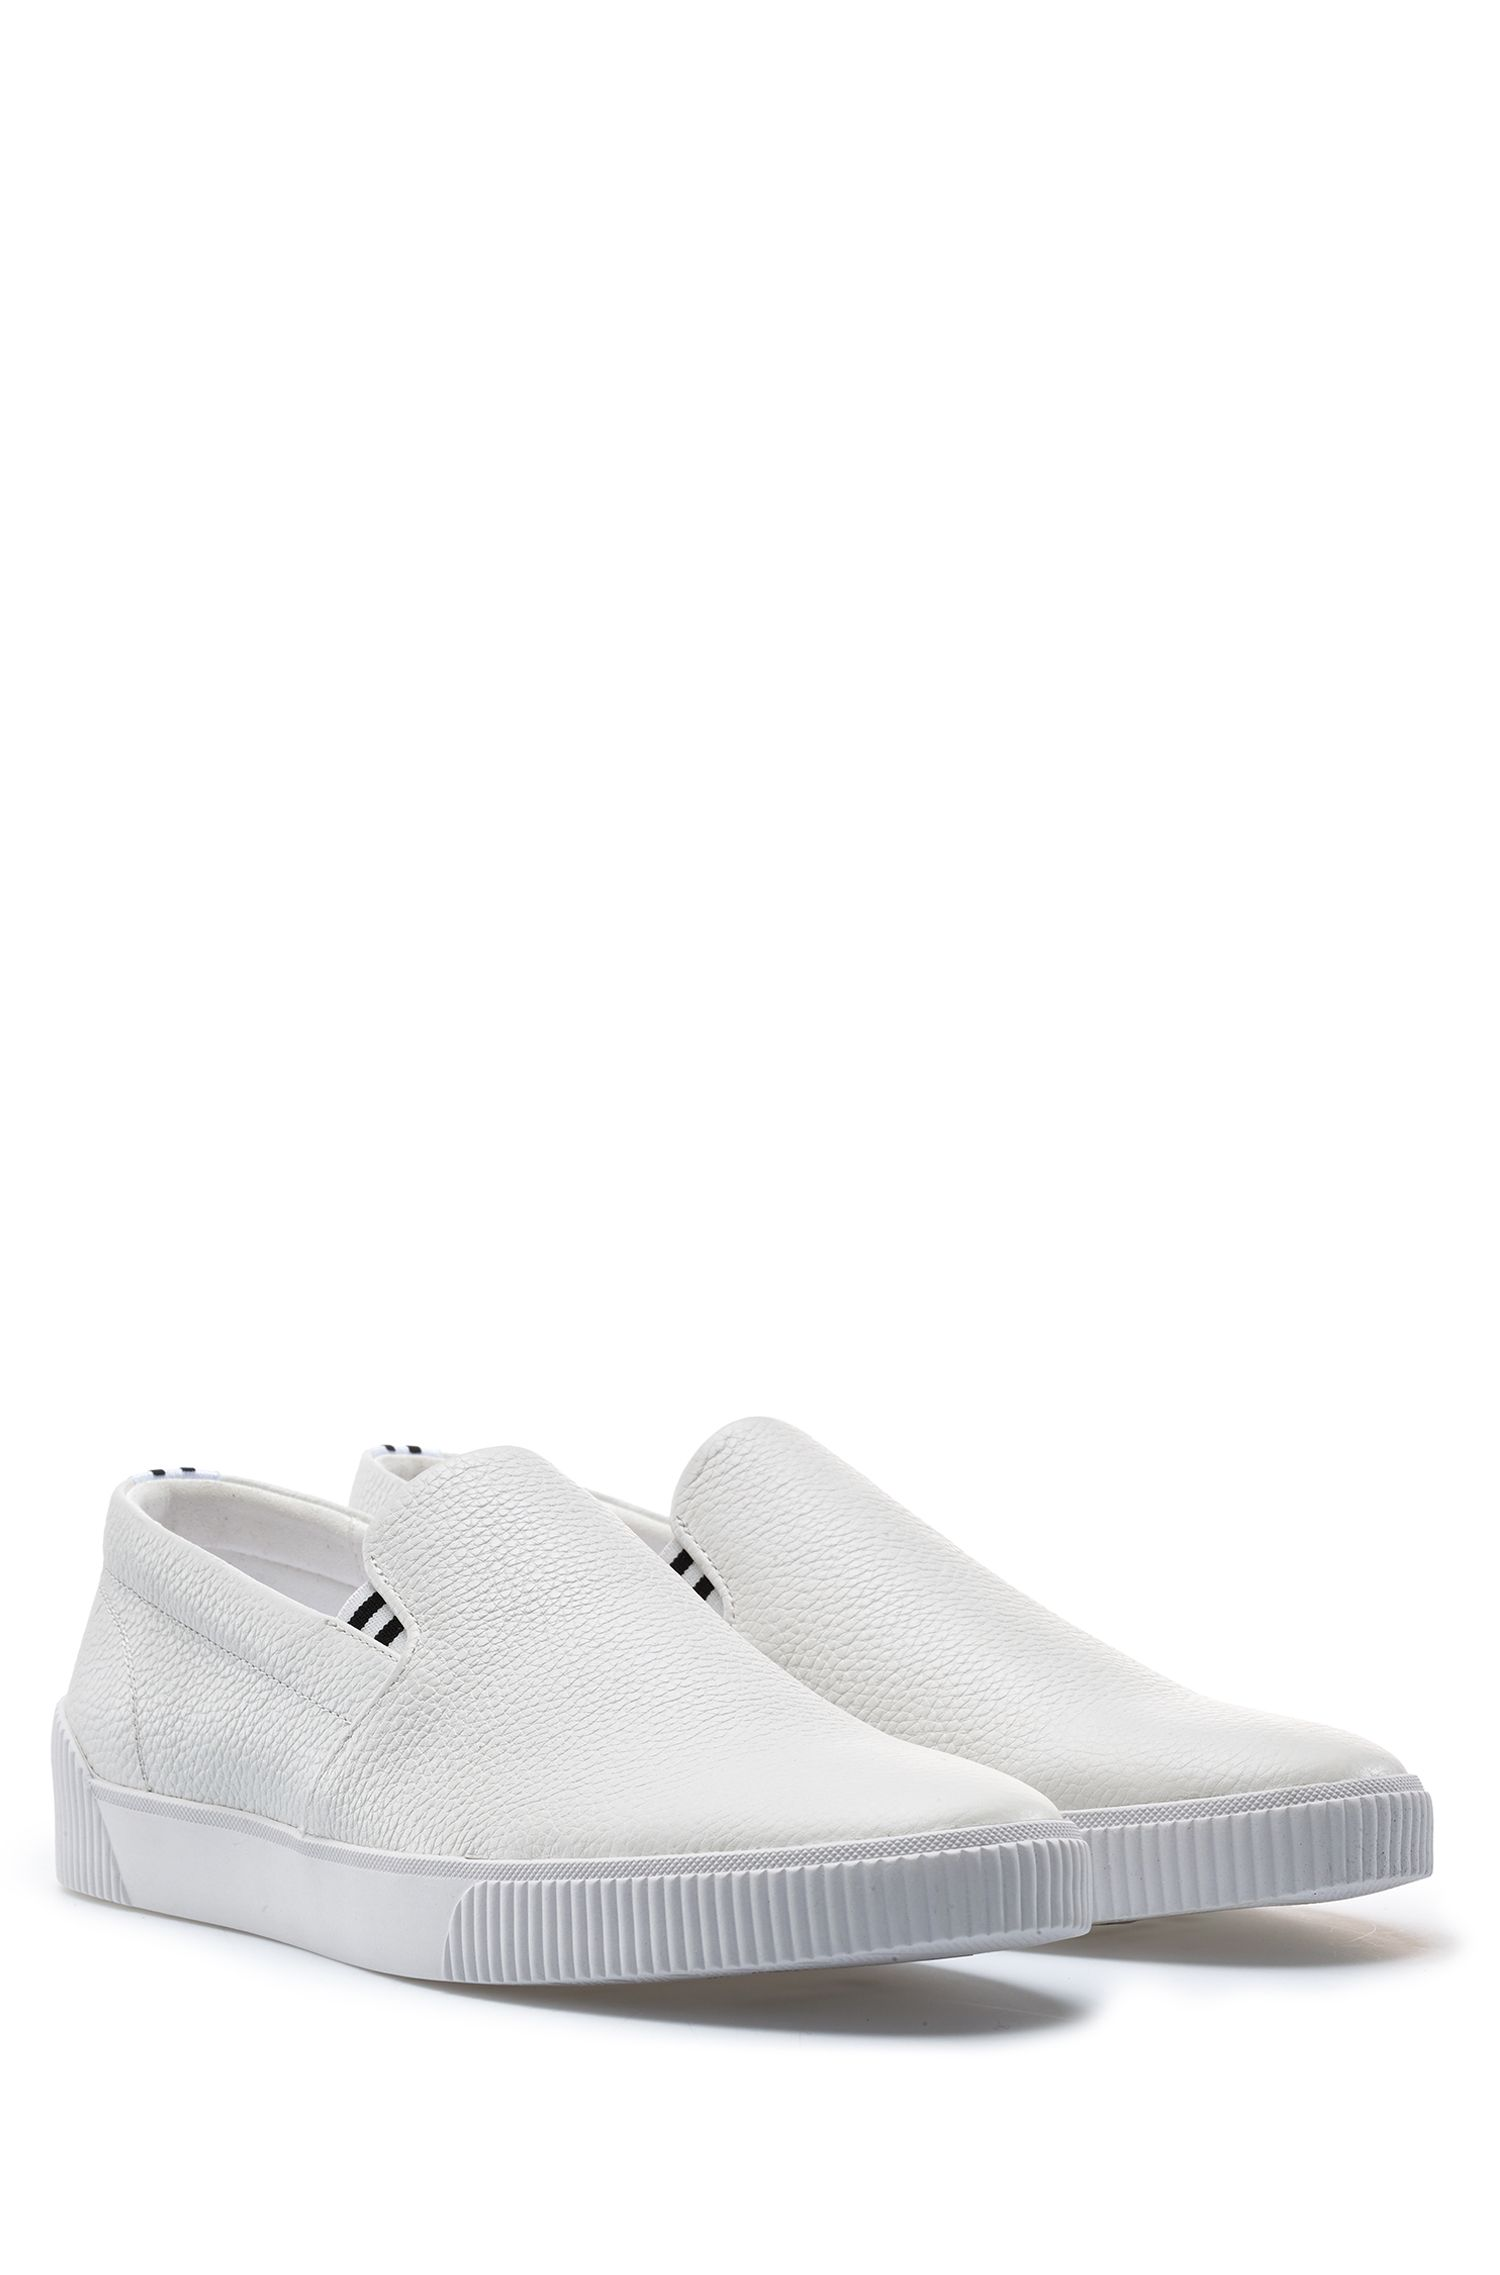 Hugo Boss - Slip-on trainers with grainy calf-leather uppers - 2